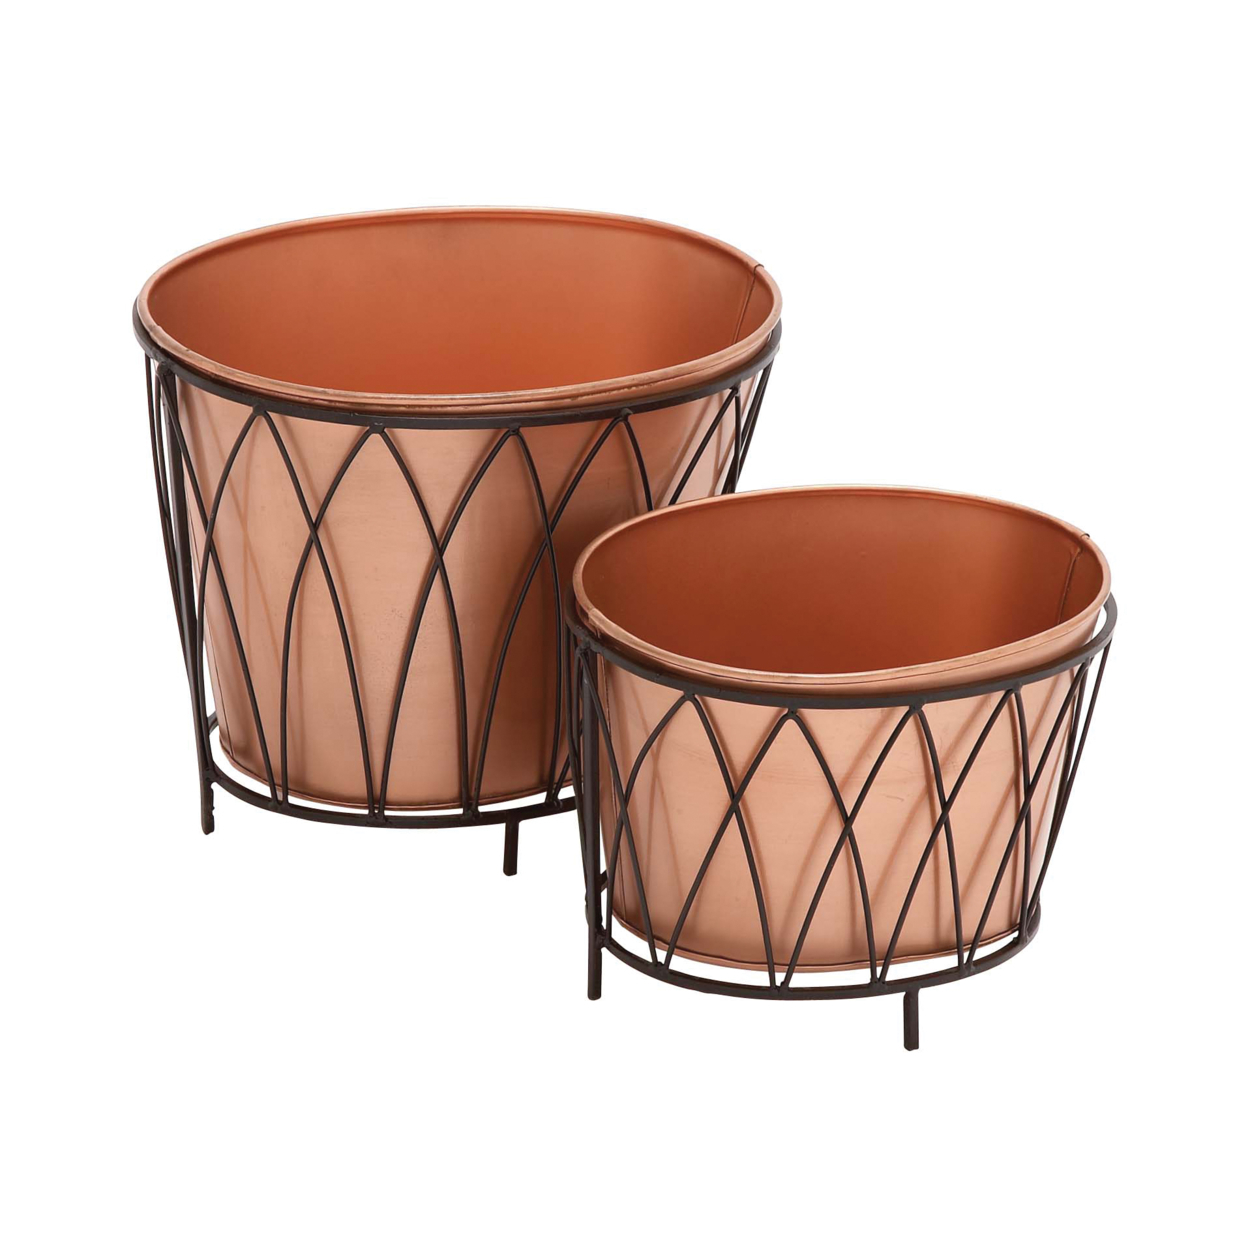 Exclusive Styled Metal Oval Planter 59fae3012a00e463e169ae00